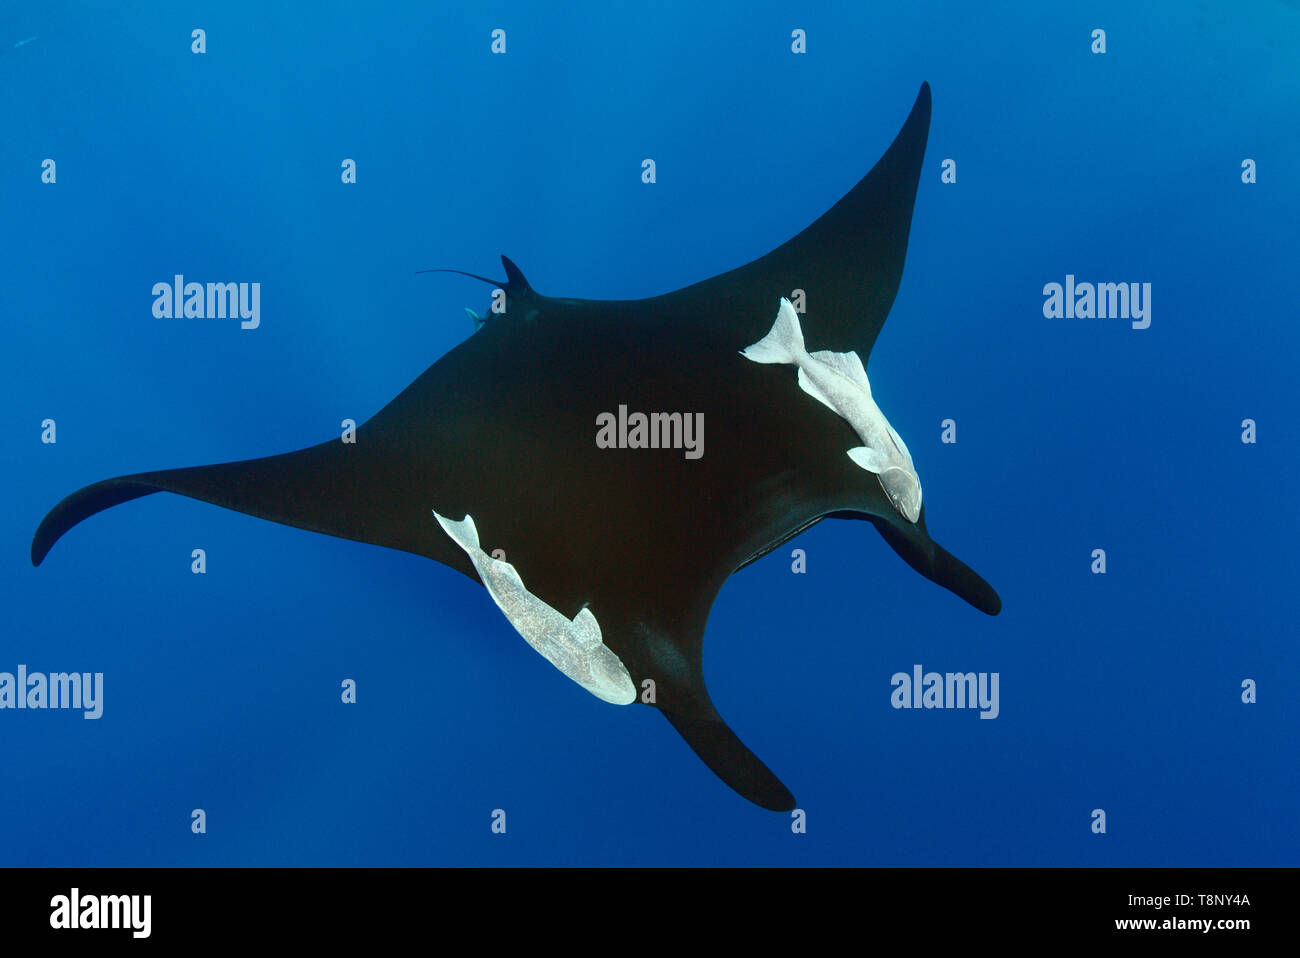 Black oceanic manta (Mobula birostris) swimming in the blue with sun rays - underwater scenery of Revillagigedo Archipelago Stock Photo